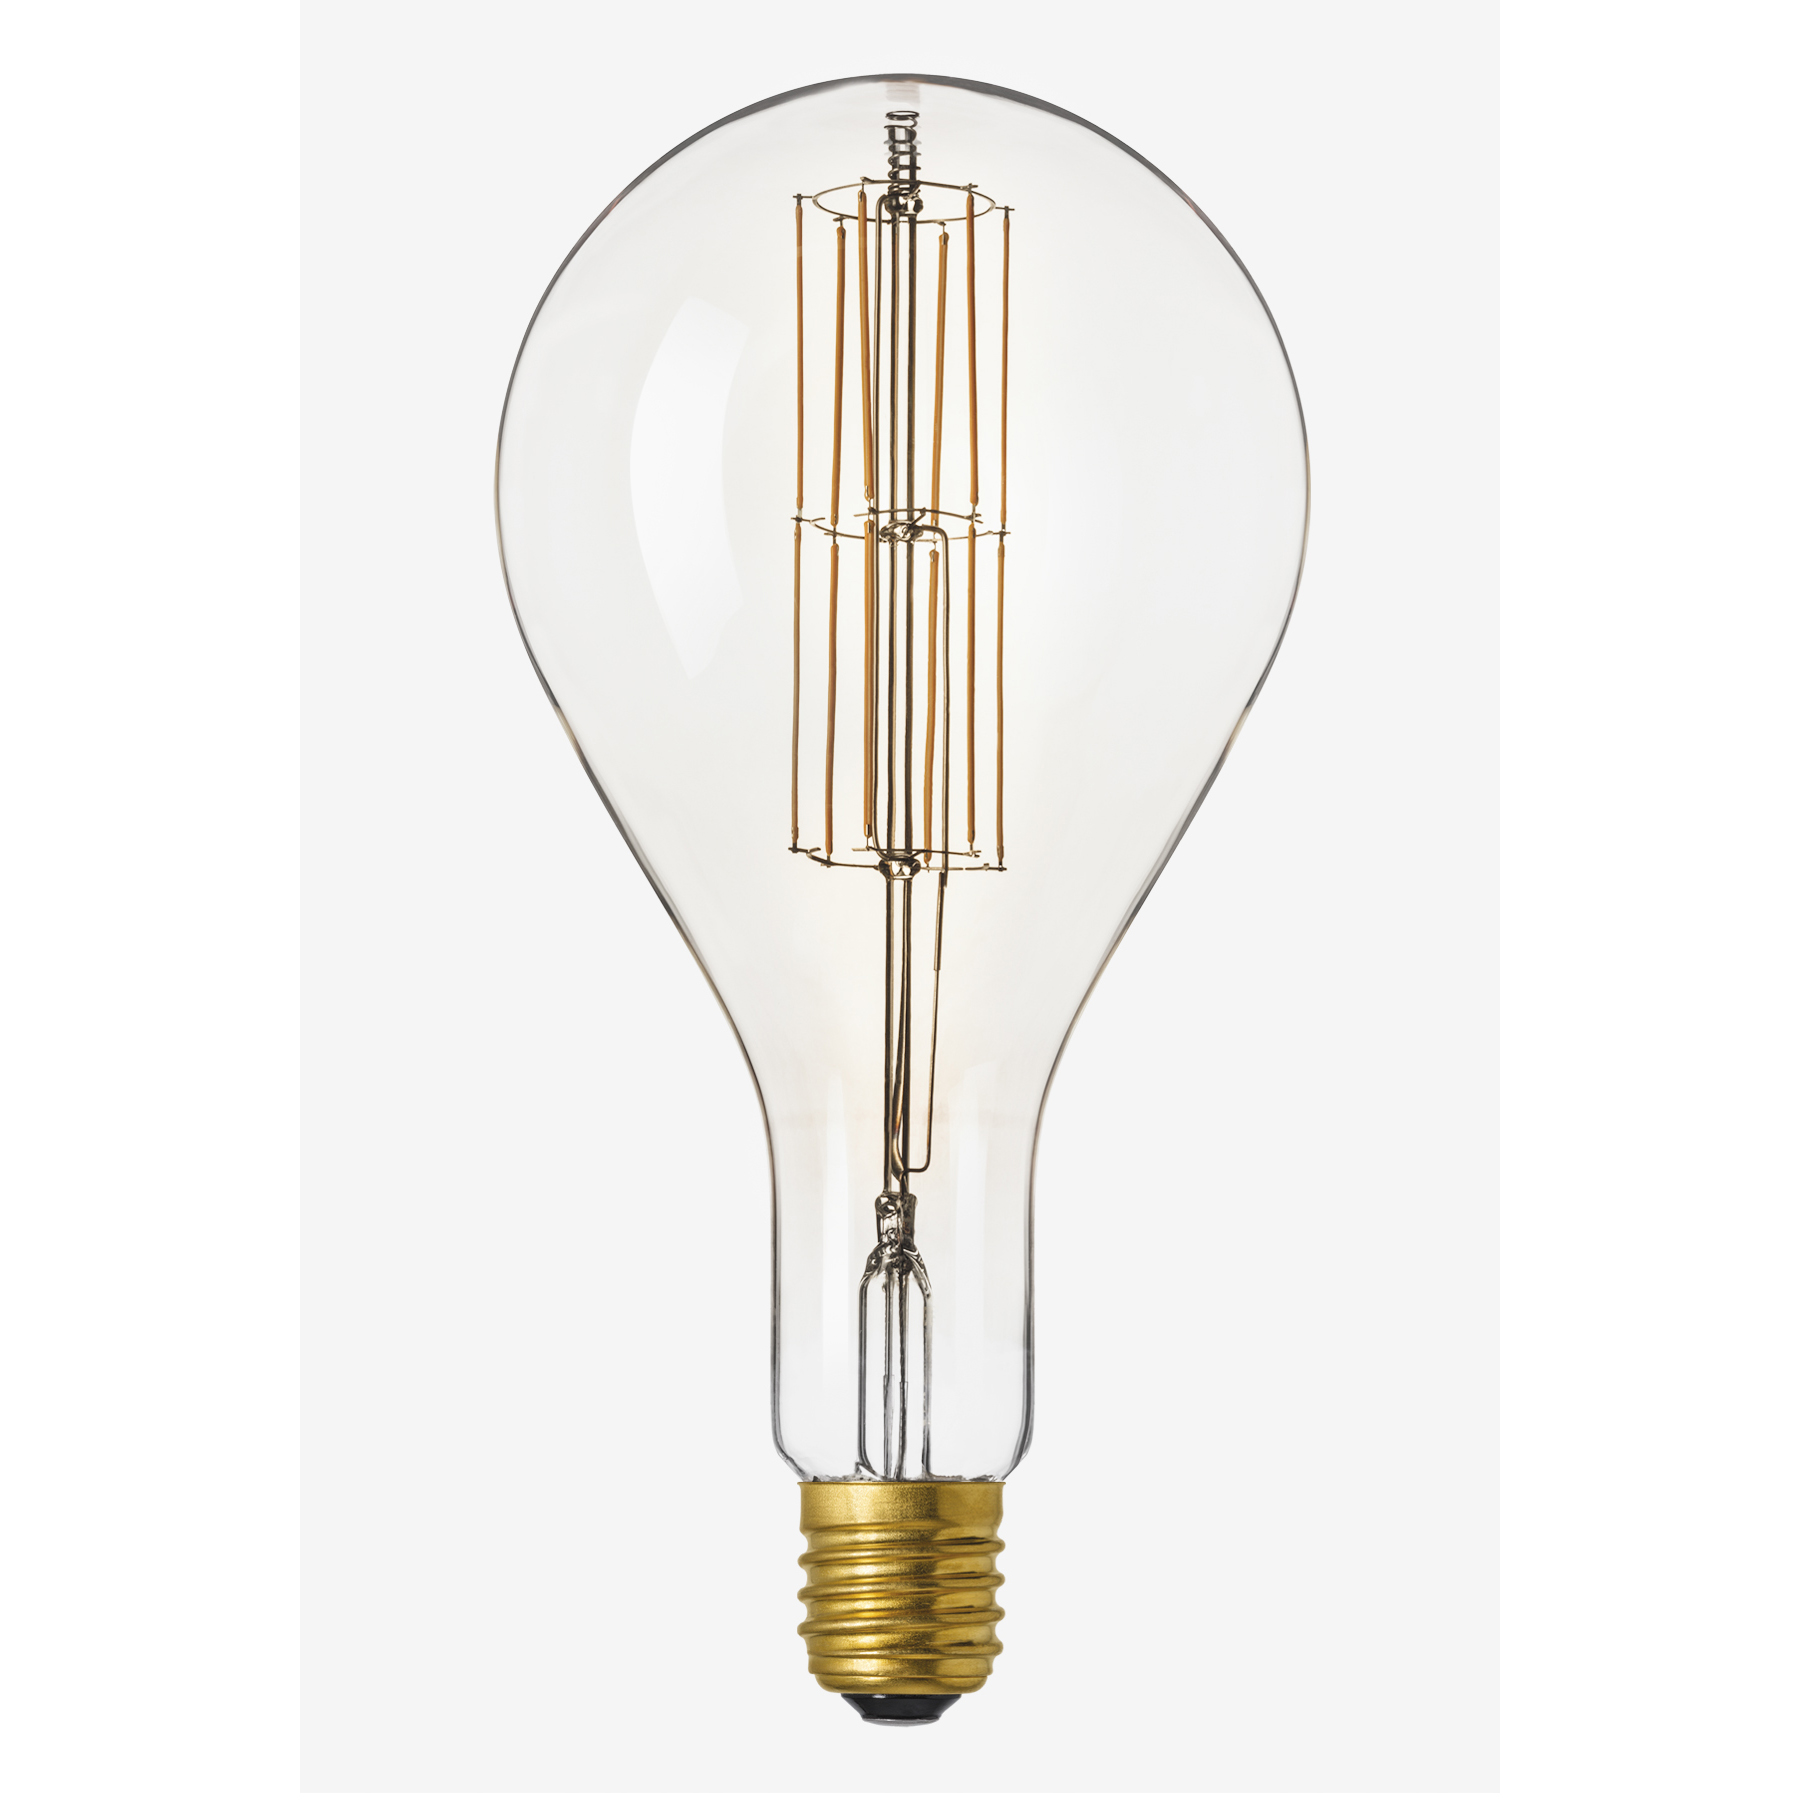 HOME-STOCK-CALEX-lichtbron led splash-HELDER-TITANIUM-GOLD-LICHTBRON